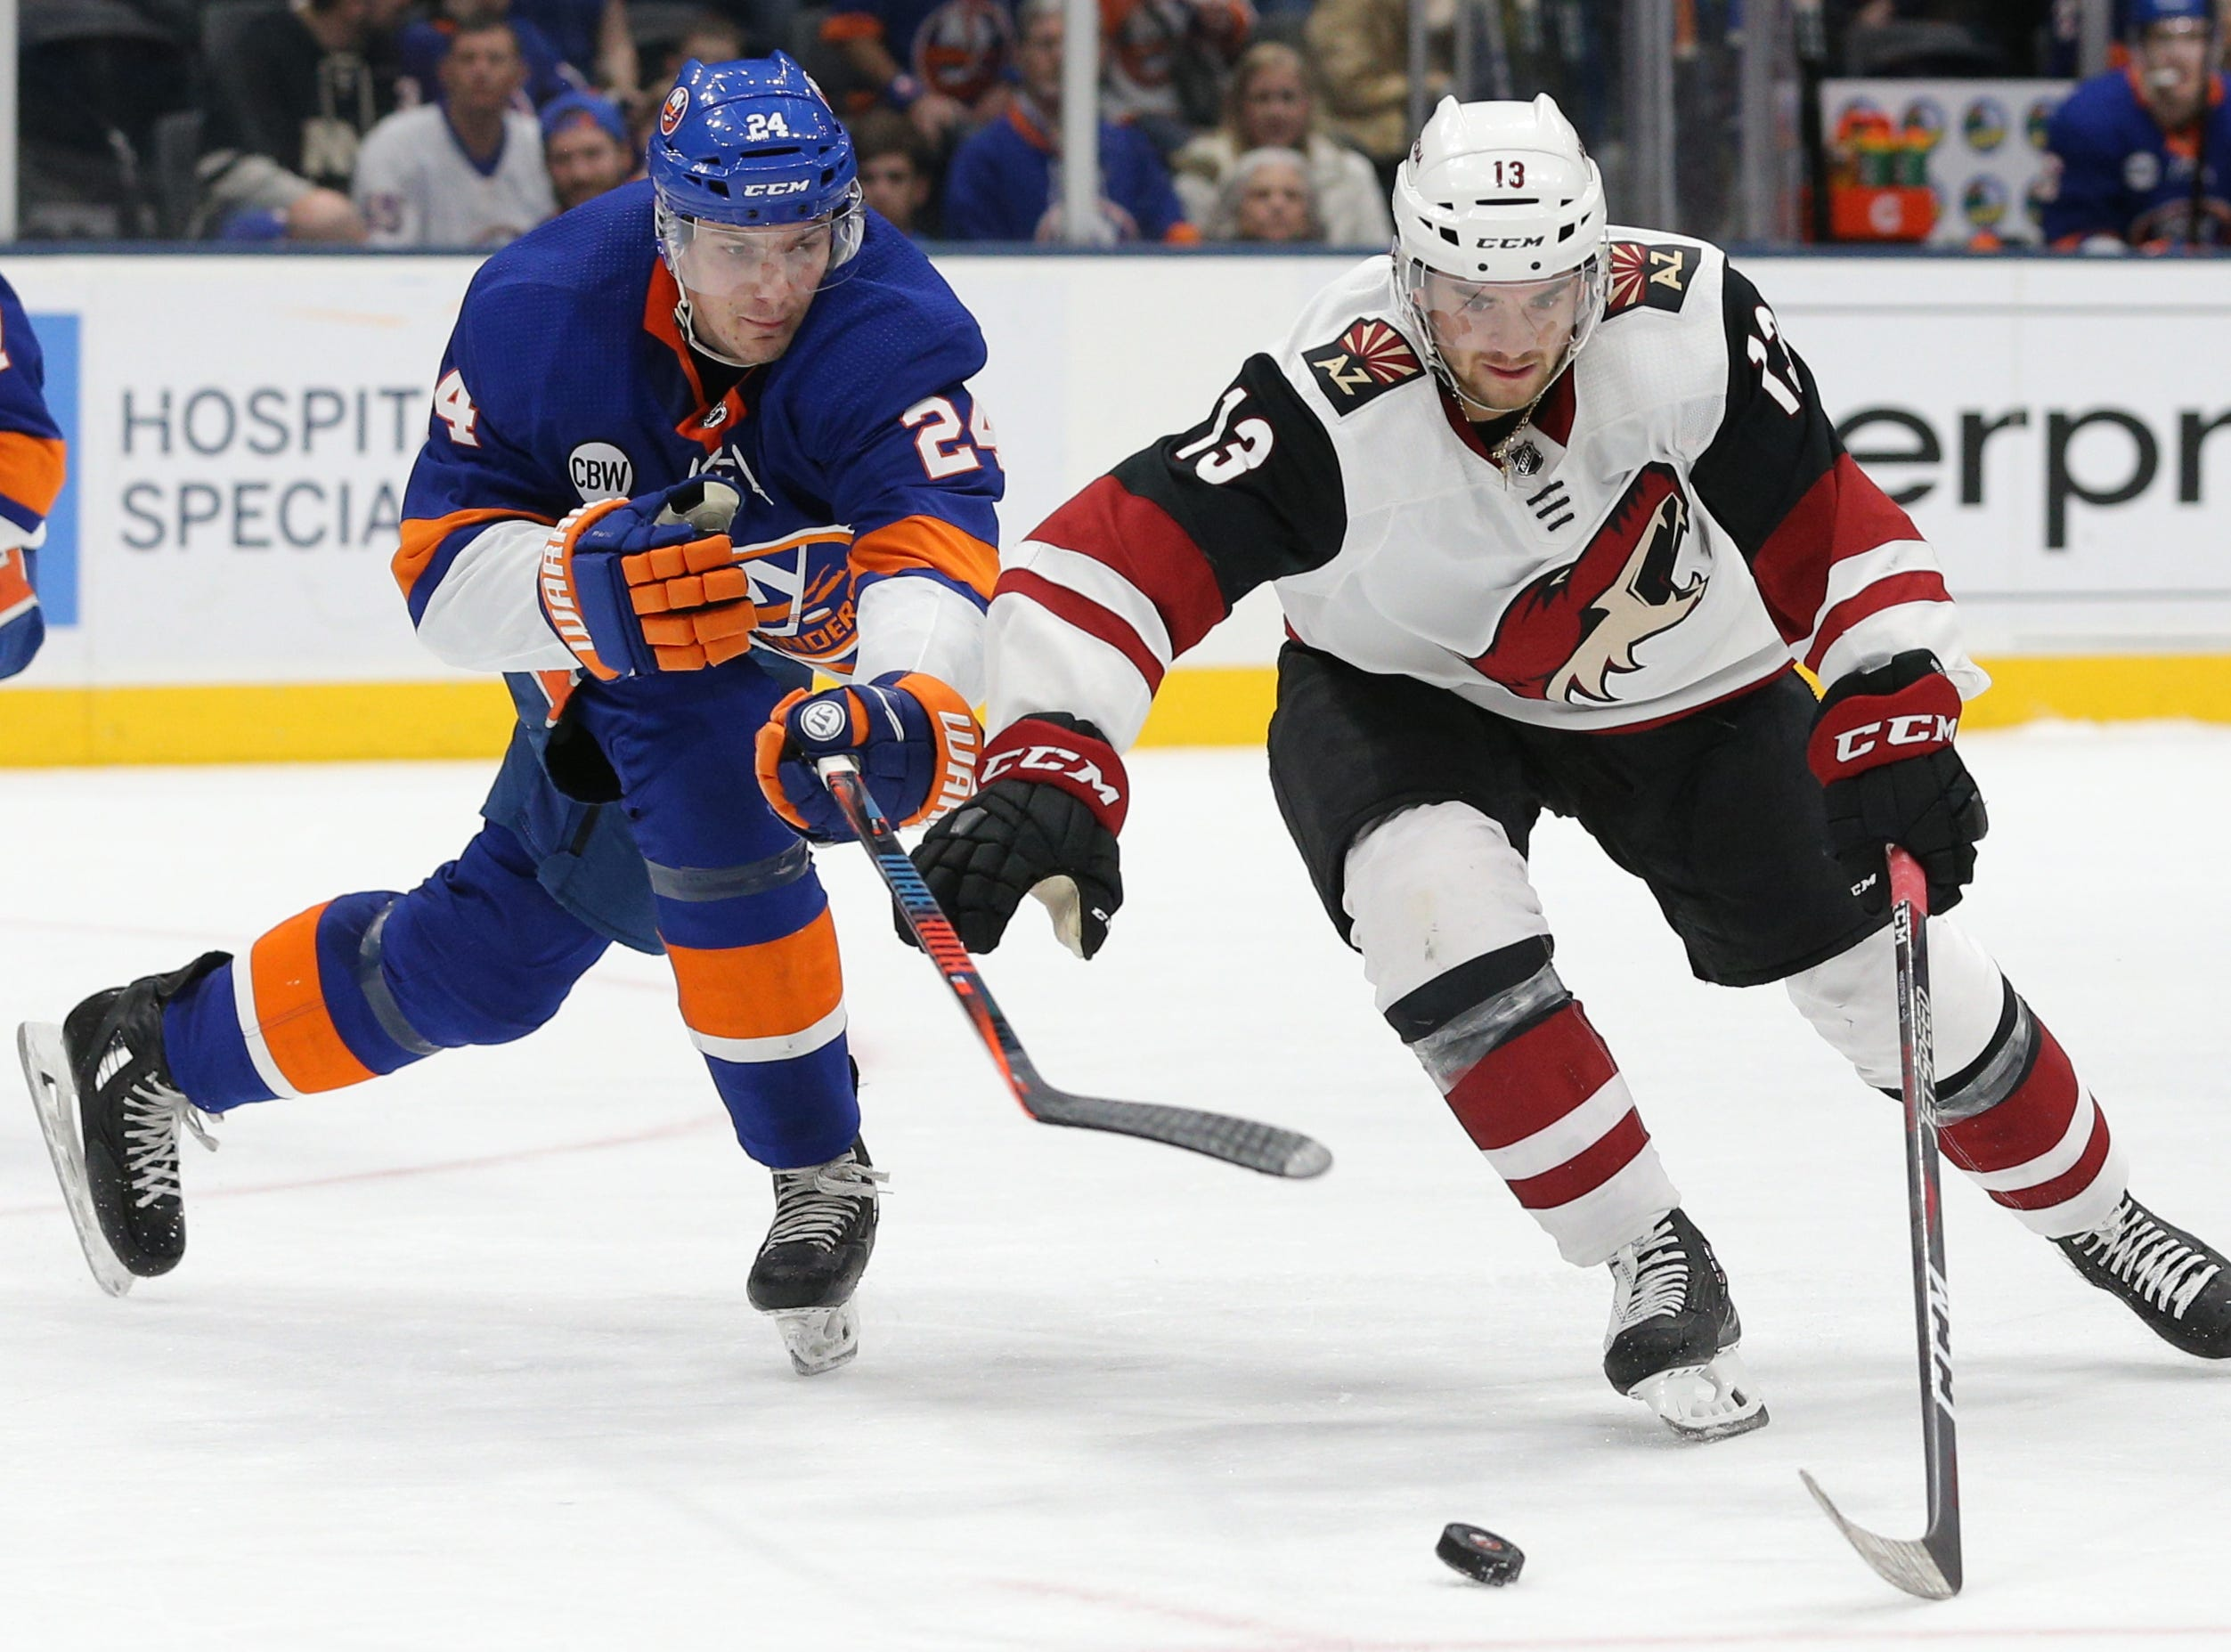 Mar 24, 2019; Uniondale, NY, USA; Arizona Coyotes center Vinnie Hinostroza (13) plays the puck against New York Islanders defenseman Scott Mayfield (24) during the third period at Nassau Veterans Memorial Coliseum. Mandatory Credit: Brad Penner-USA TODAY Sports